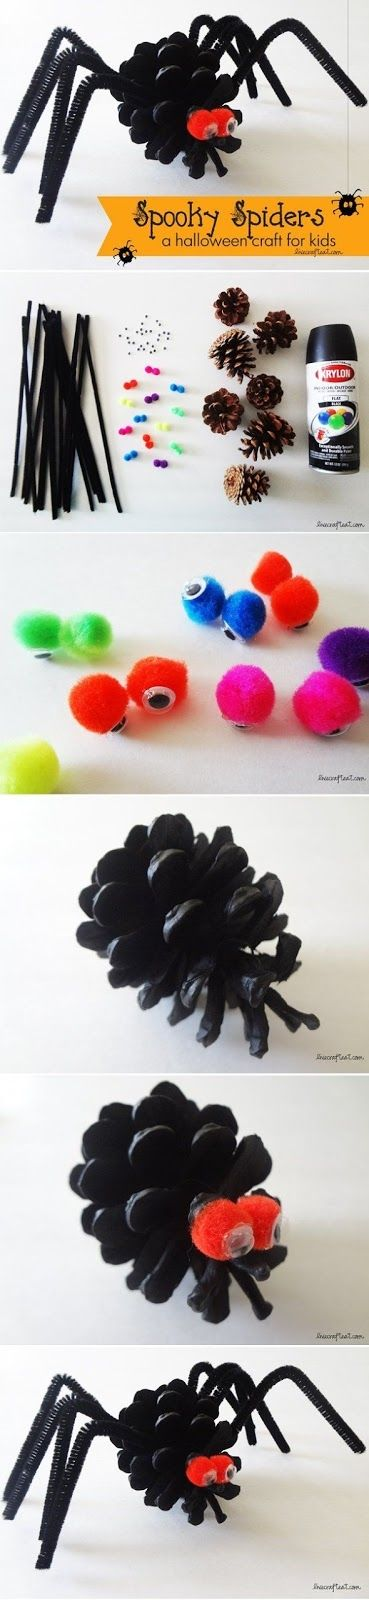 DIY Halloween Spooky Spiders halloween halloween party halloween decorations halloween crafts halloween ideas diy halloween halloween party decor kids diy halloween halloween kids crafts easy halloween crafts halloween spiders